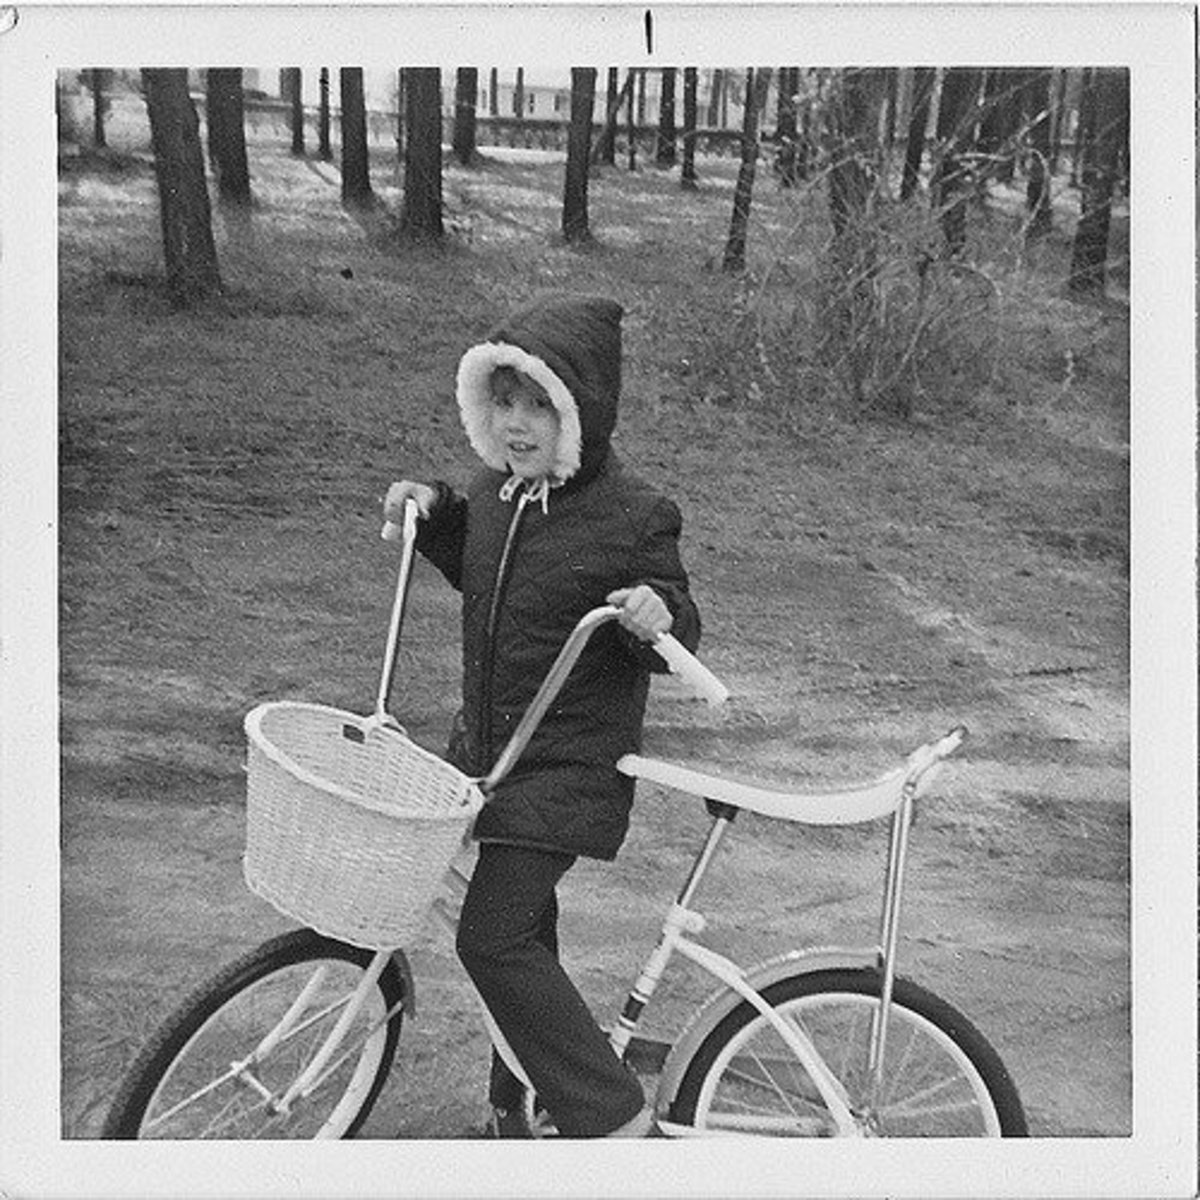 Memories of My 1970s Bicycle